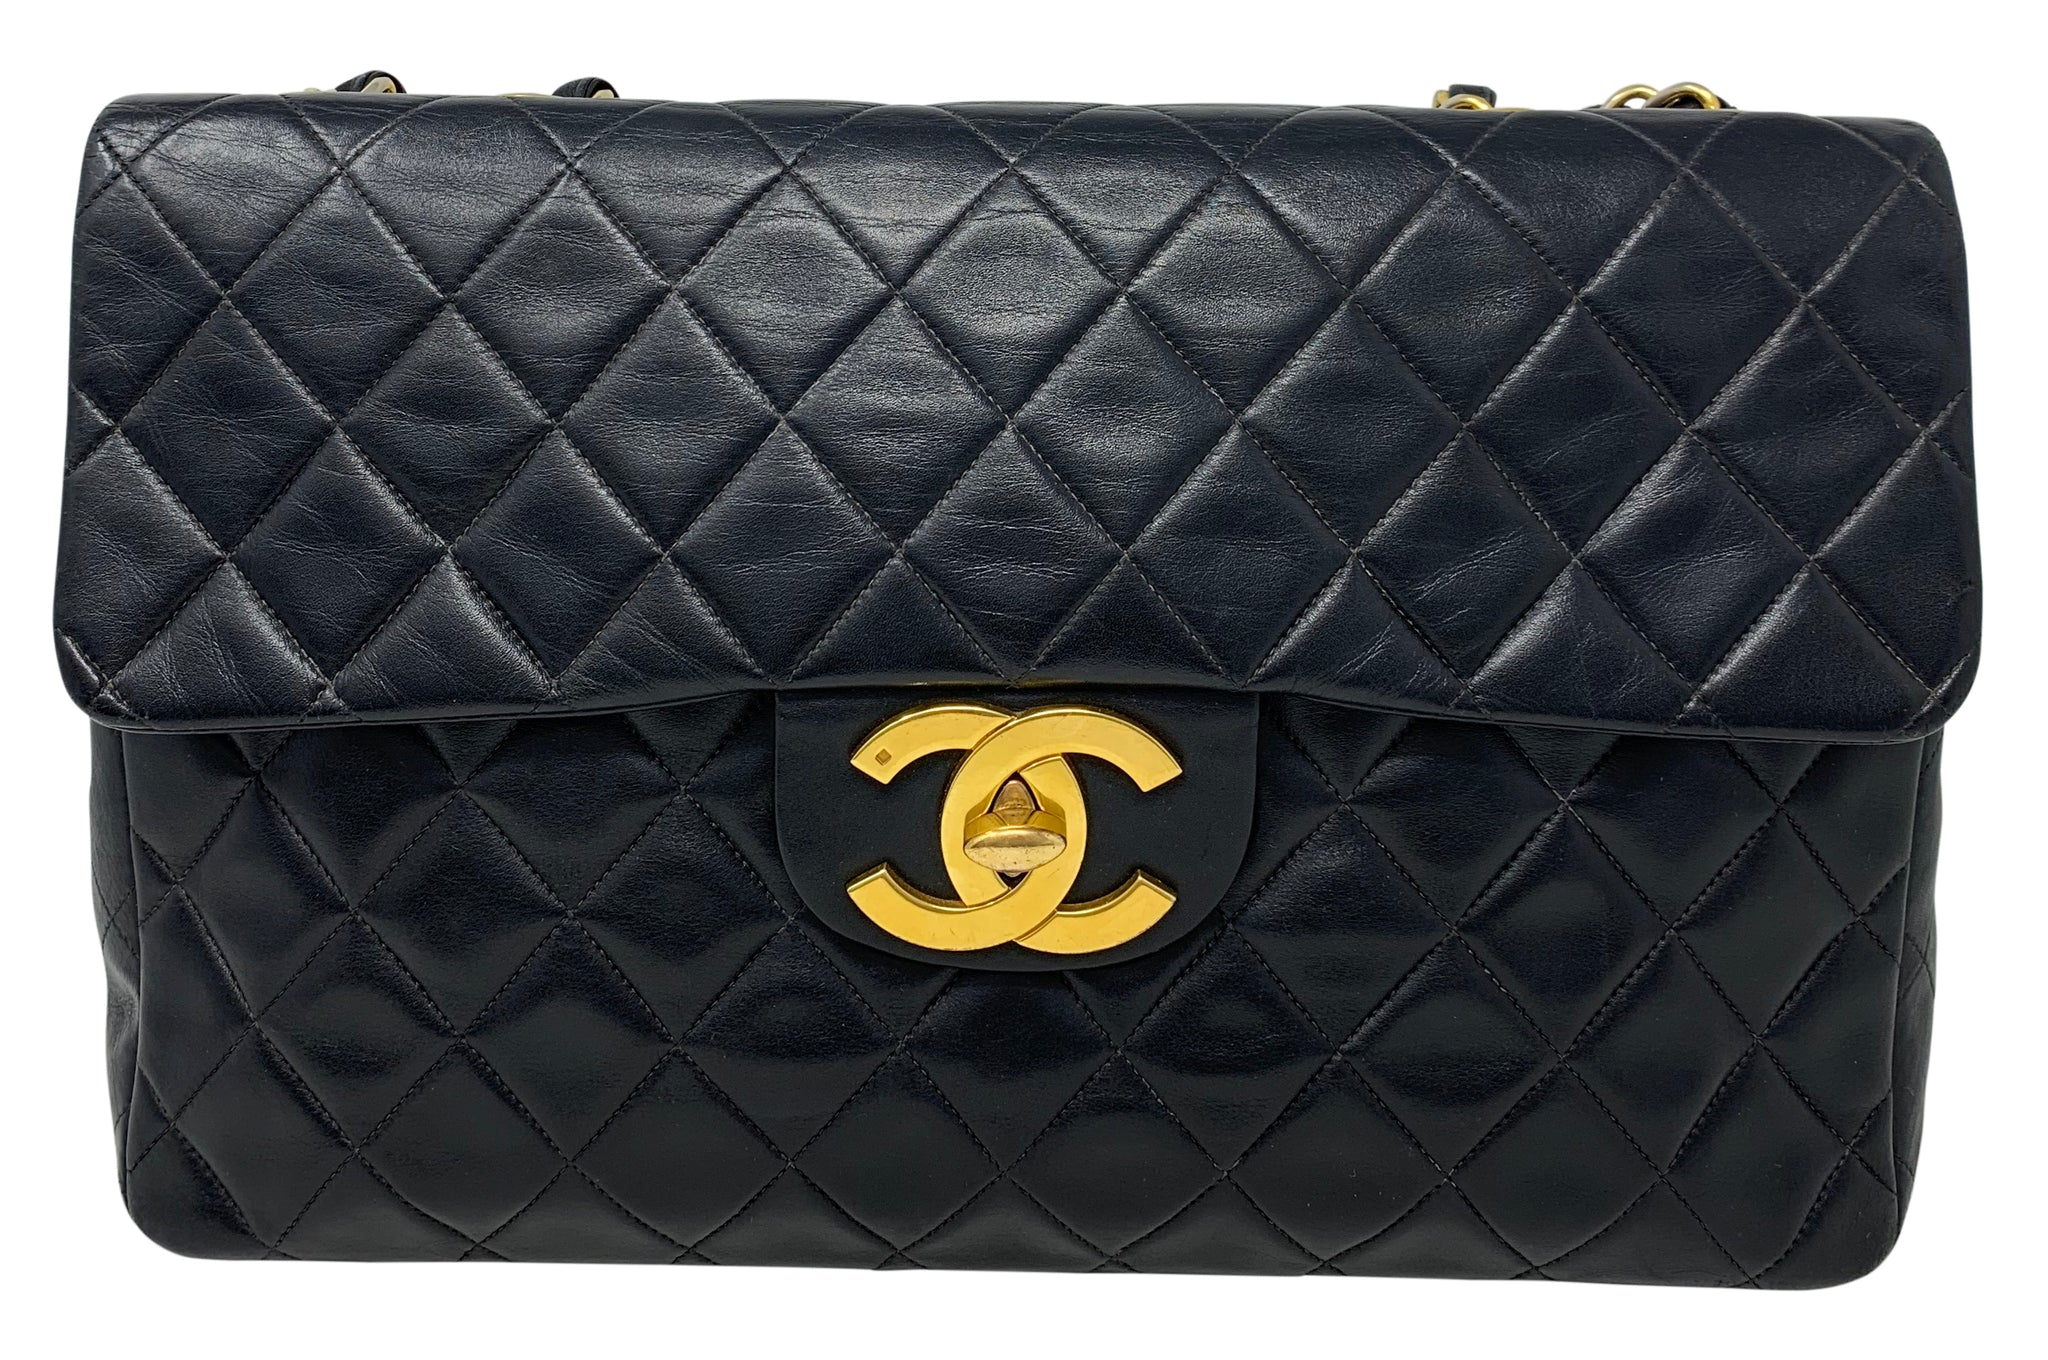 Chanel Lambskin vintage Maxi Single flap